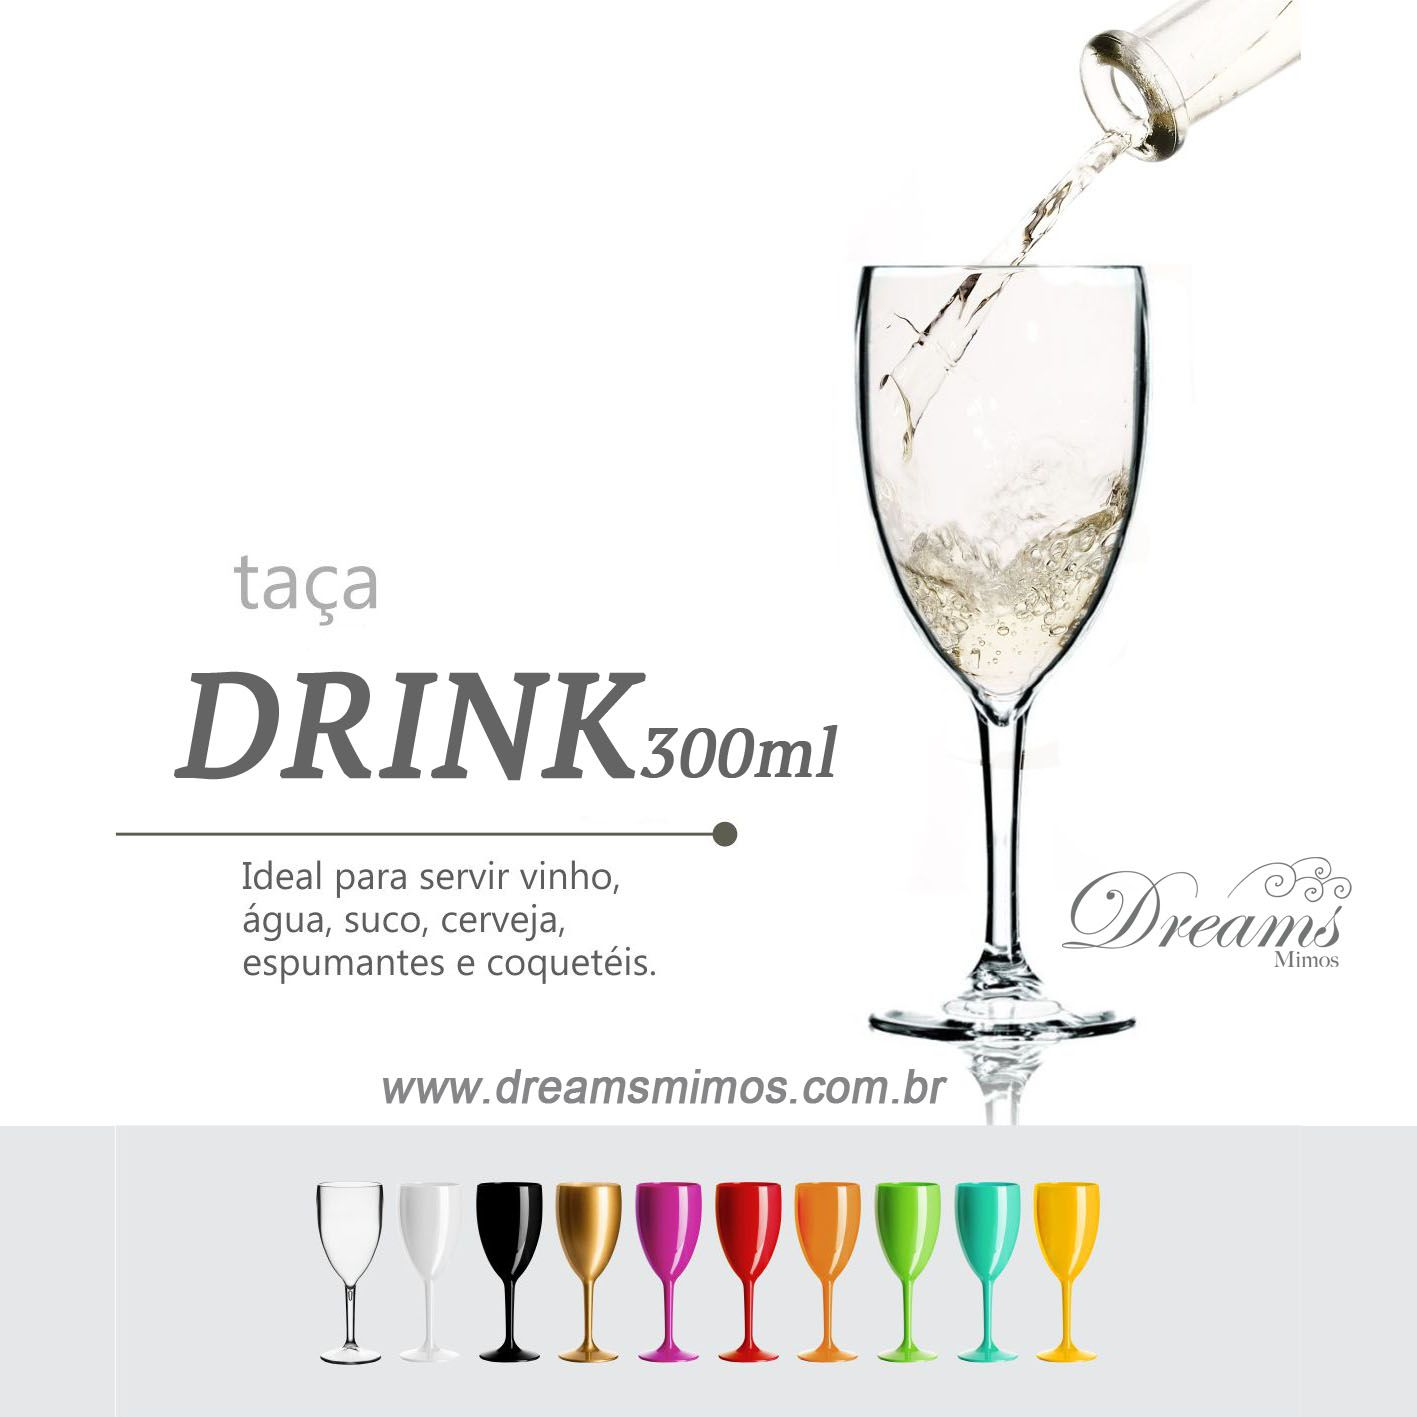 TAÇA DRINK 300ML